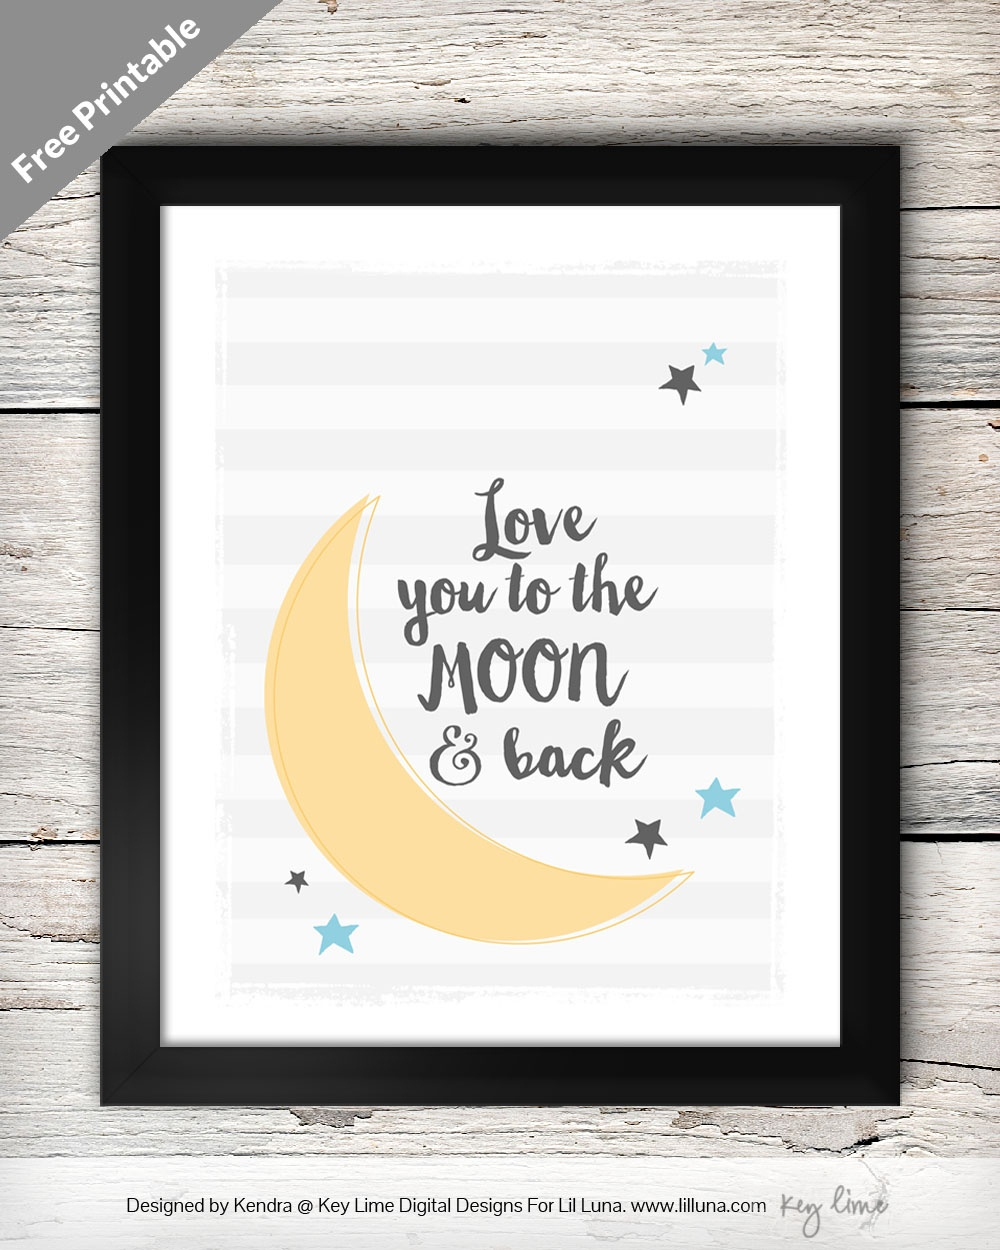 Love You To The Moon And Back Print - Free Printable Love You To The Moon And Back